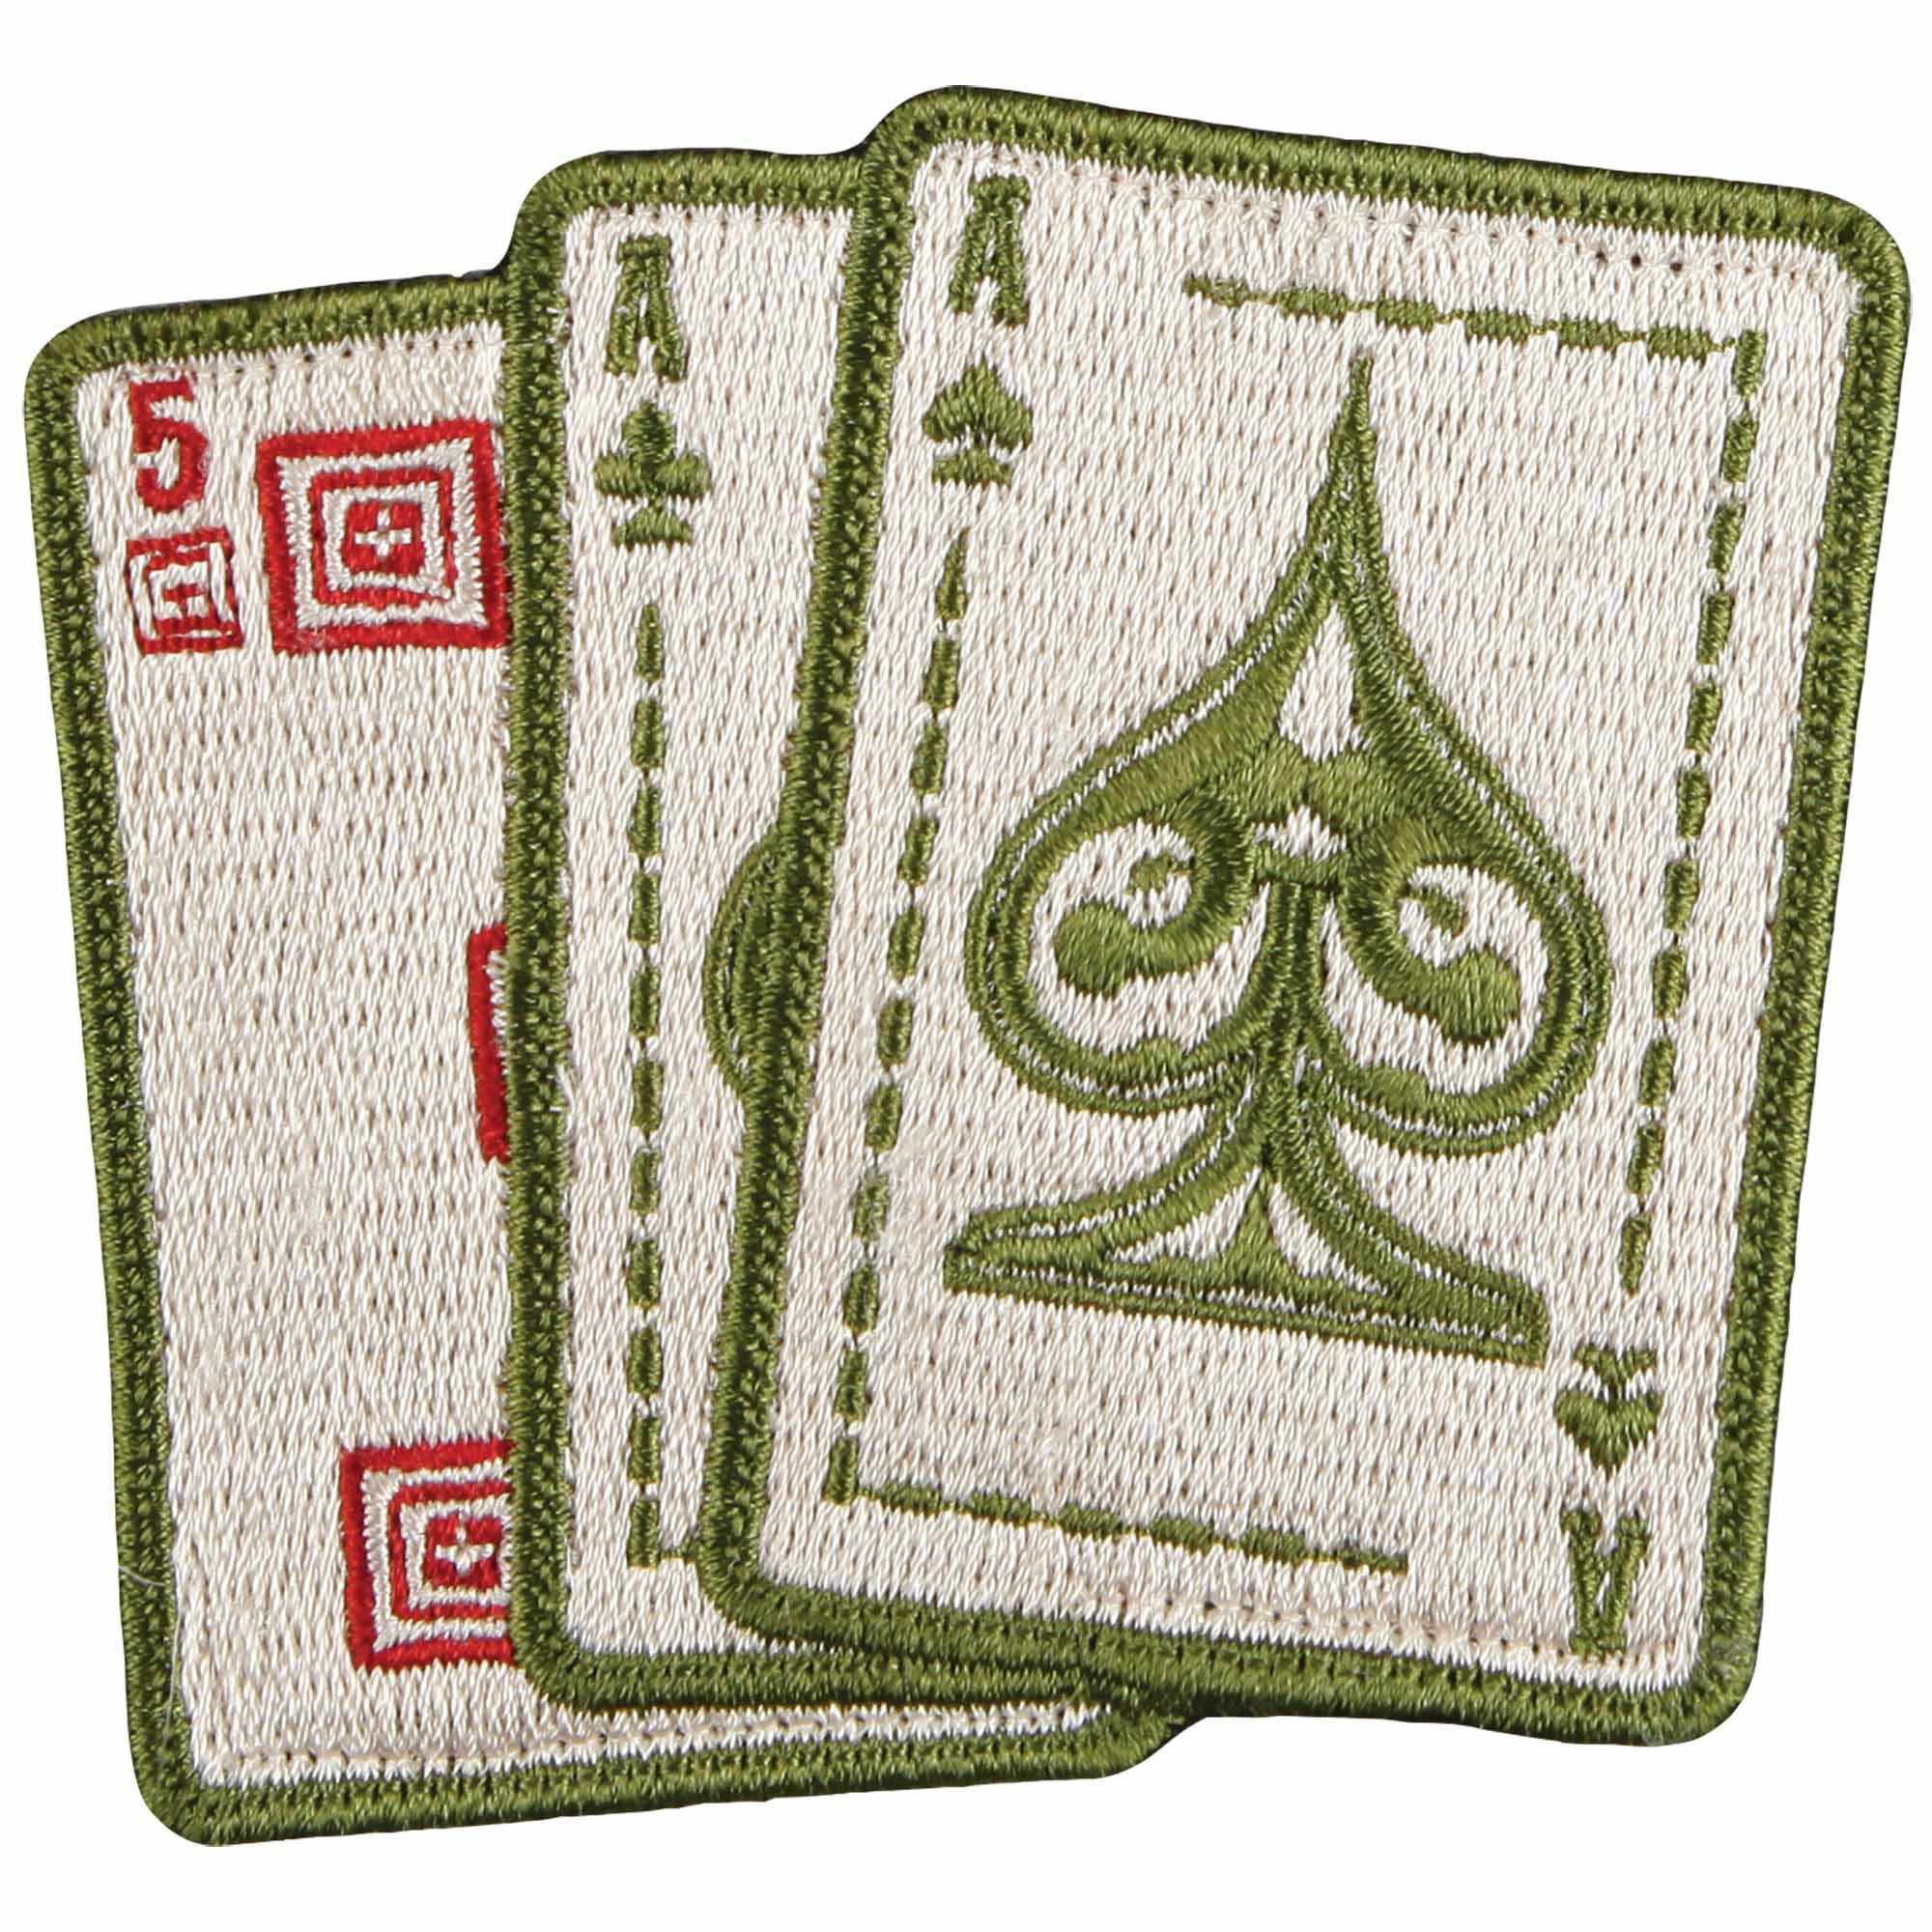 ACE IN HAND PATCH